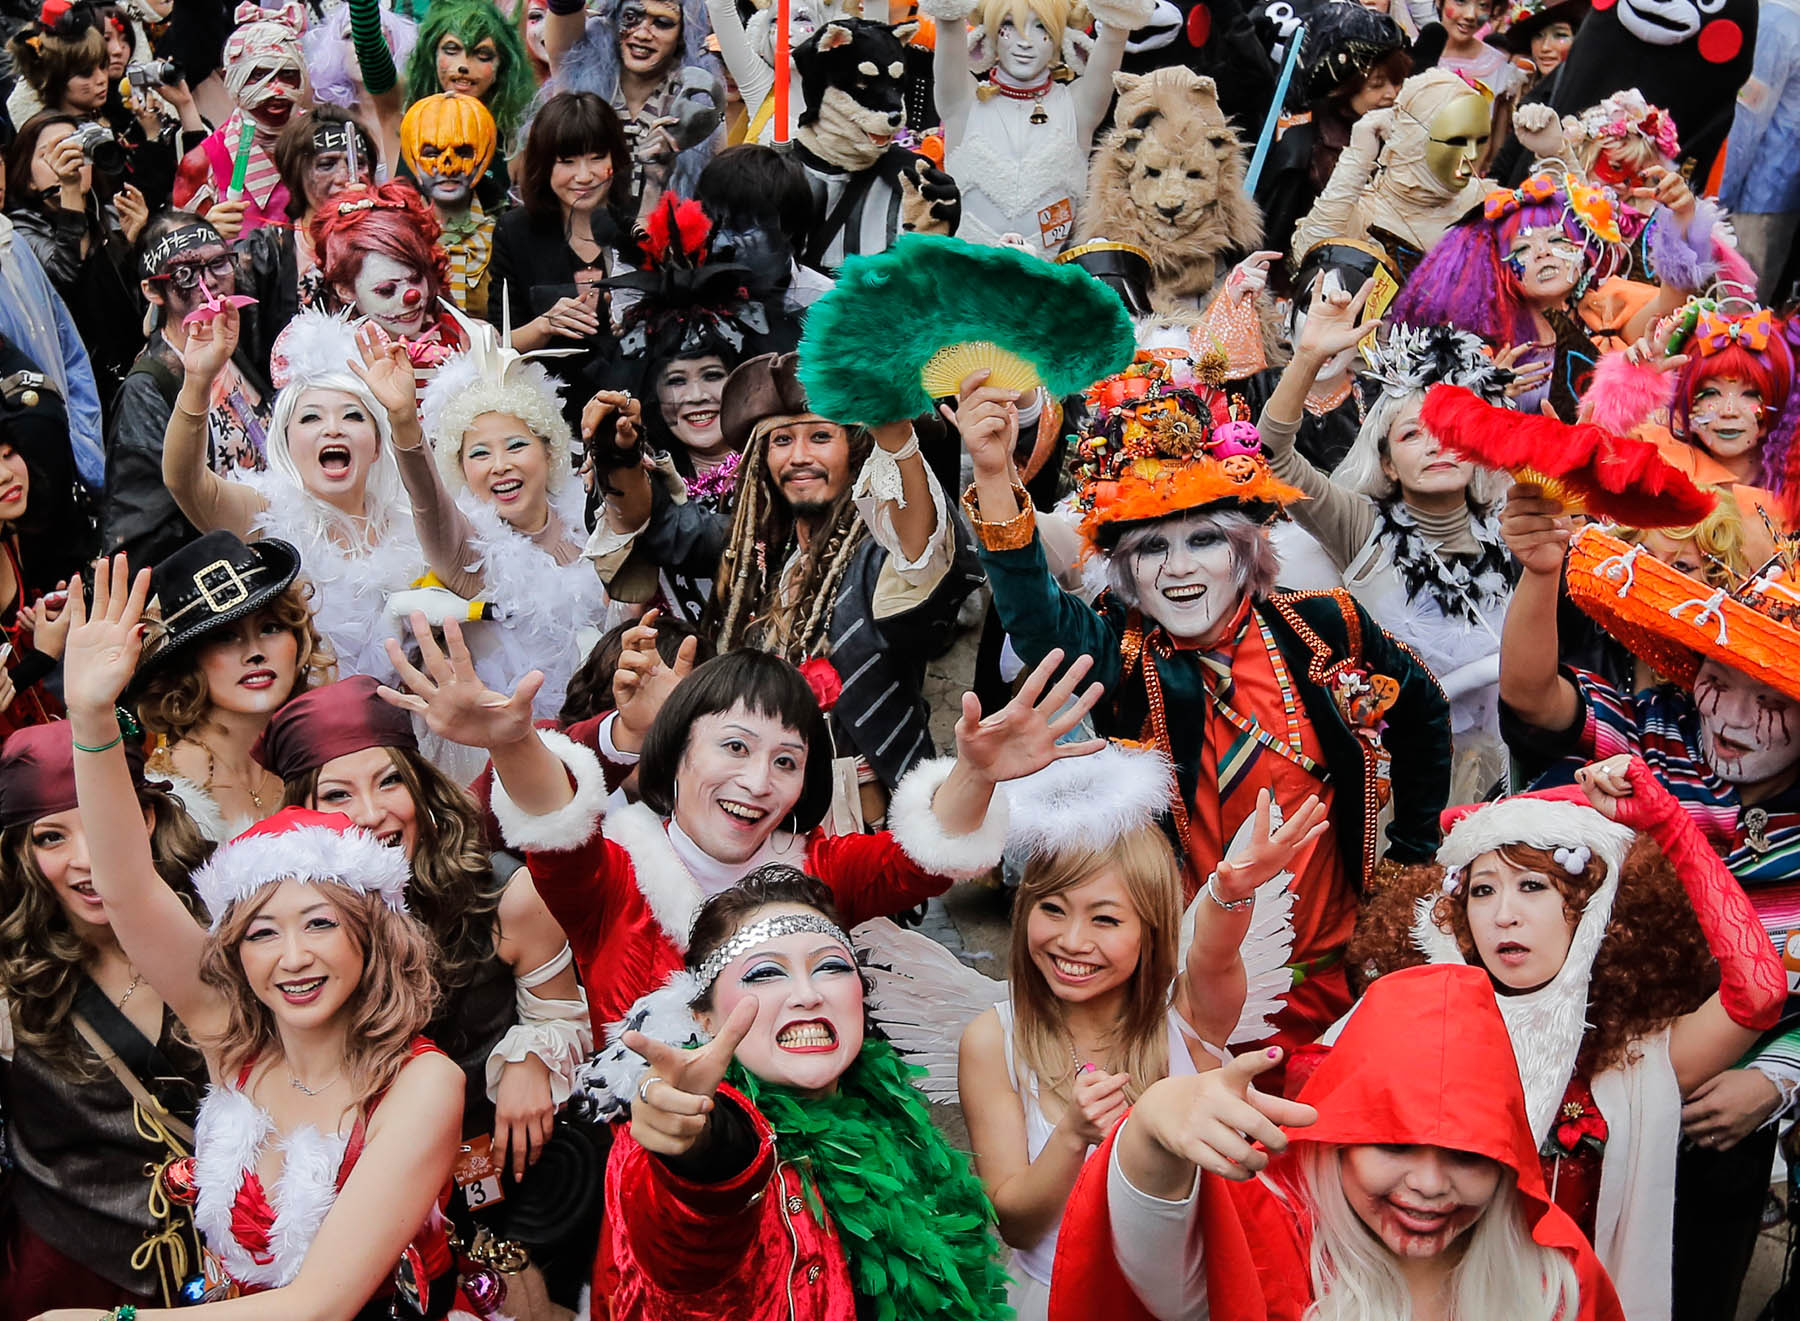 Crowd of costumed people celebrating (© AP Images)